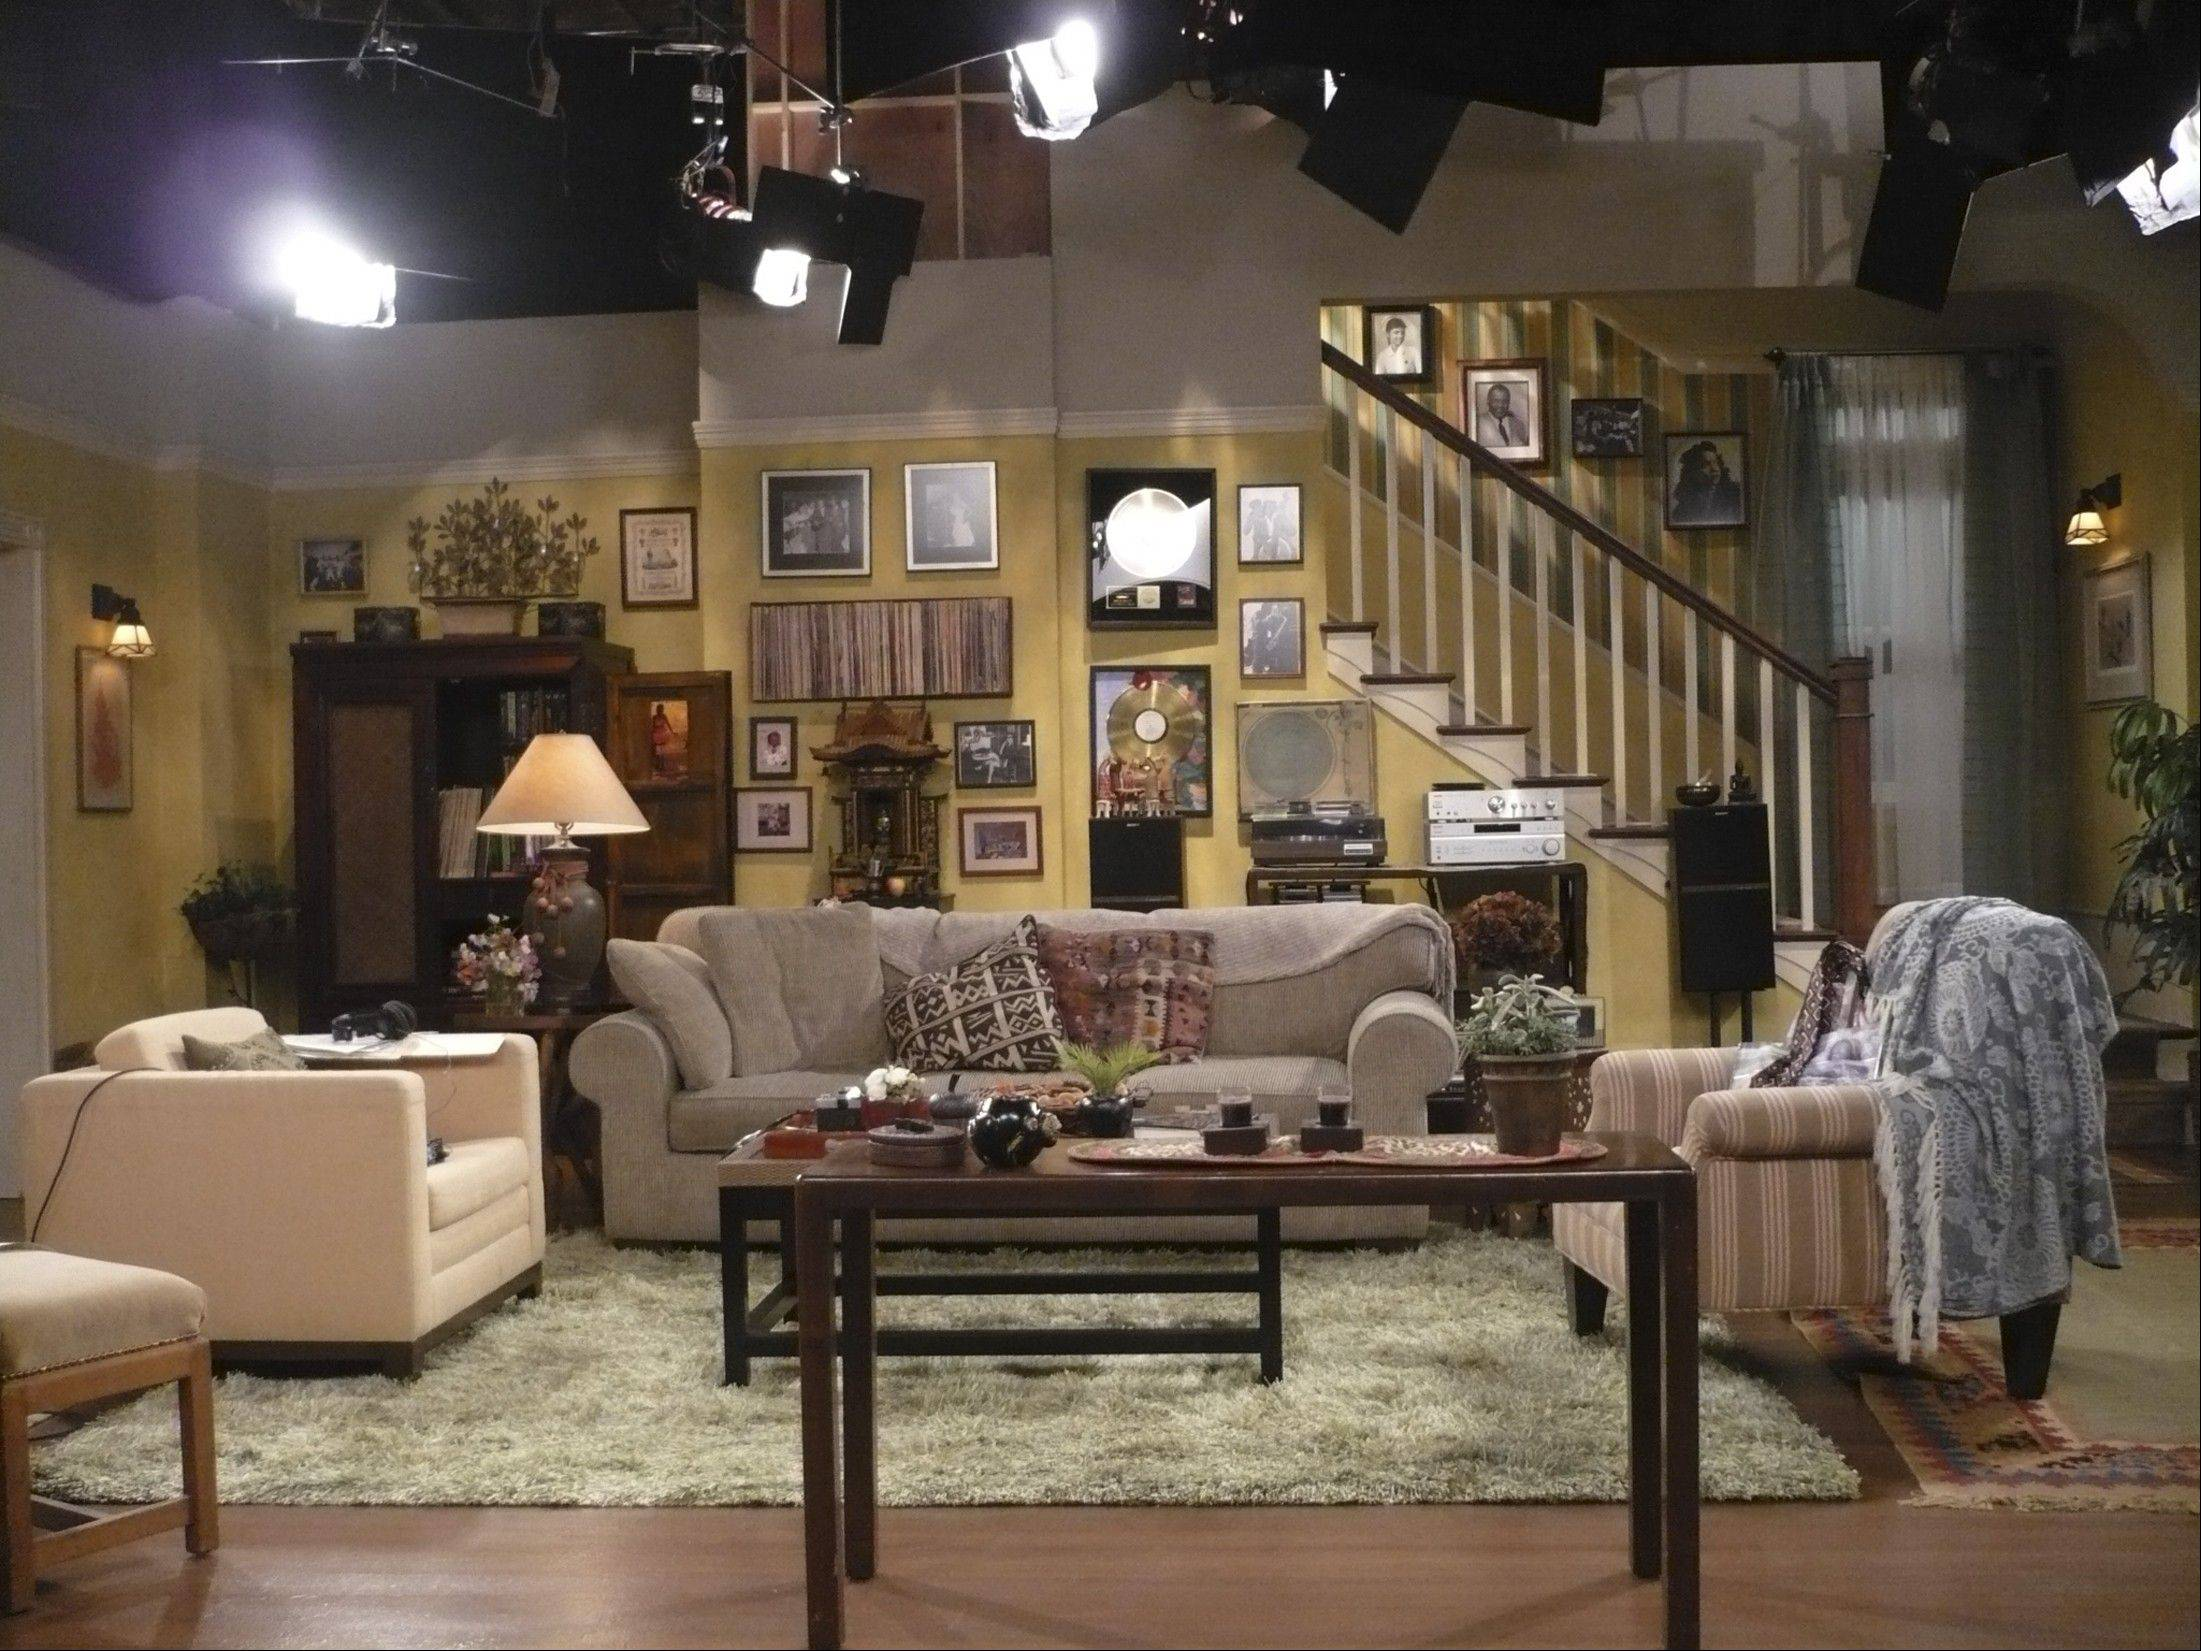 living room set with tv set decorators use decor to flesh out characters 21538